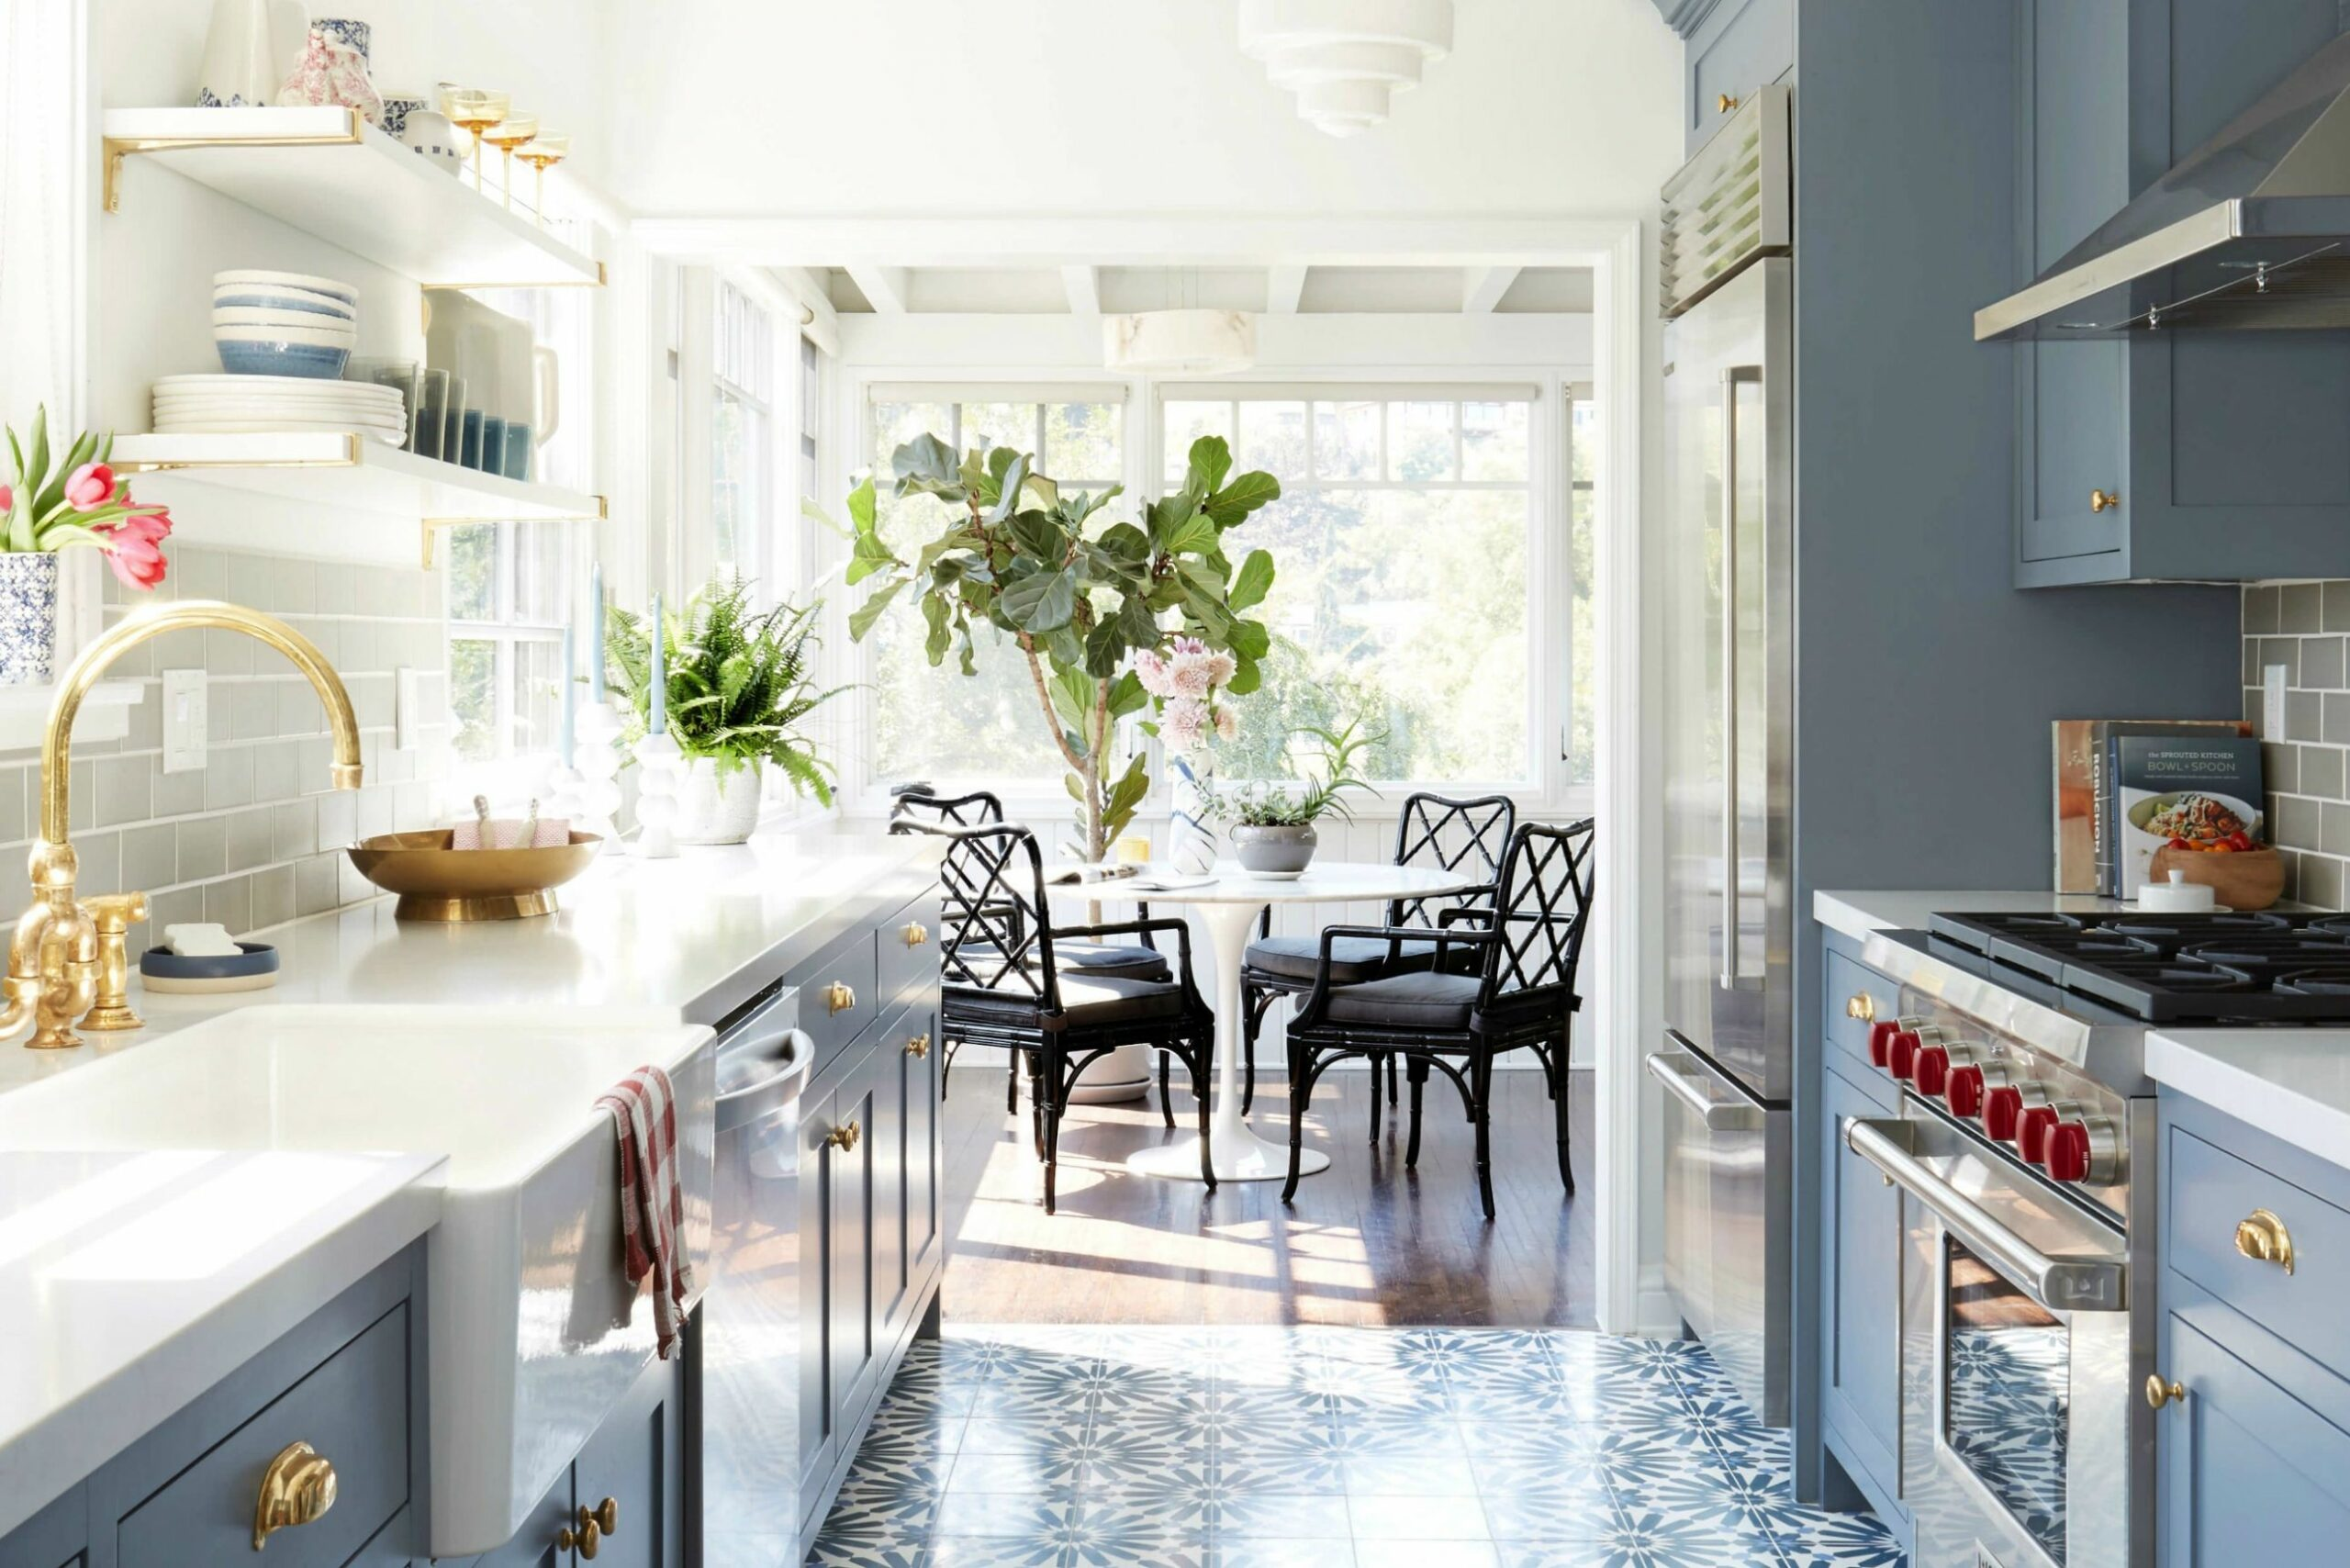 Small Galley Kitchen Ideas & Design Inspiration | Architectural Digest - kitchen ideas new